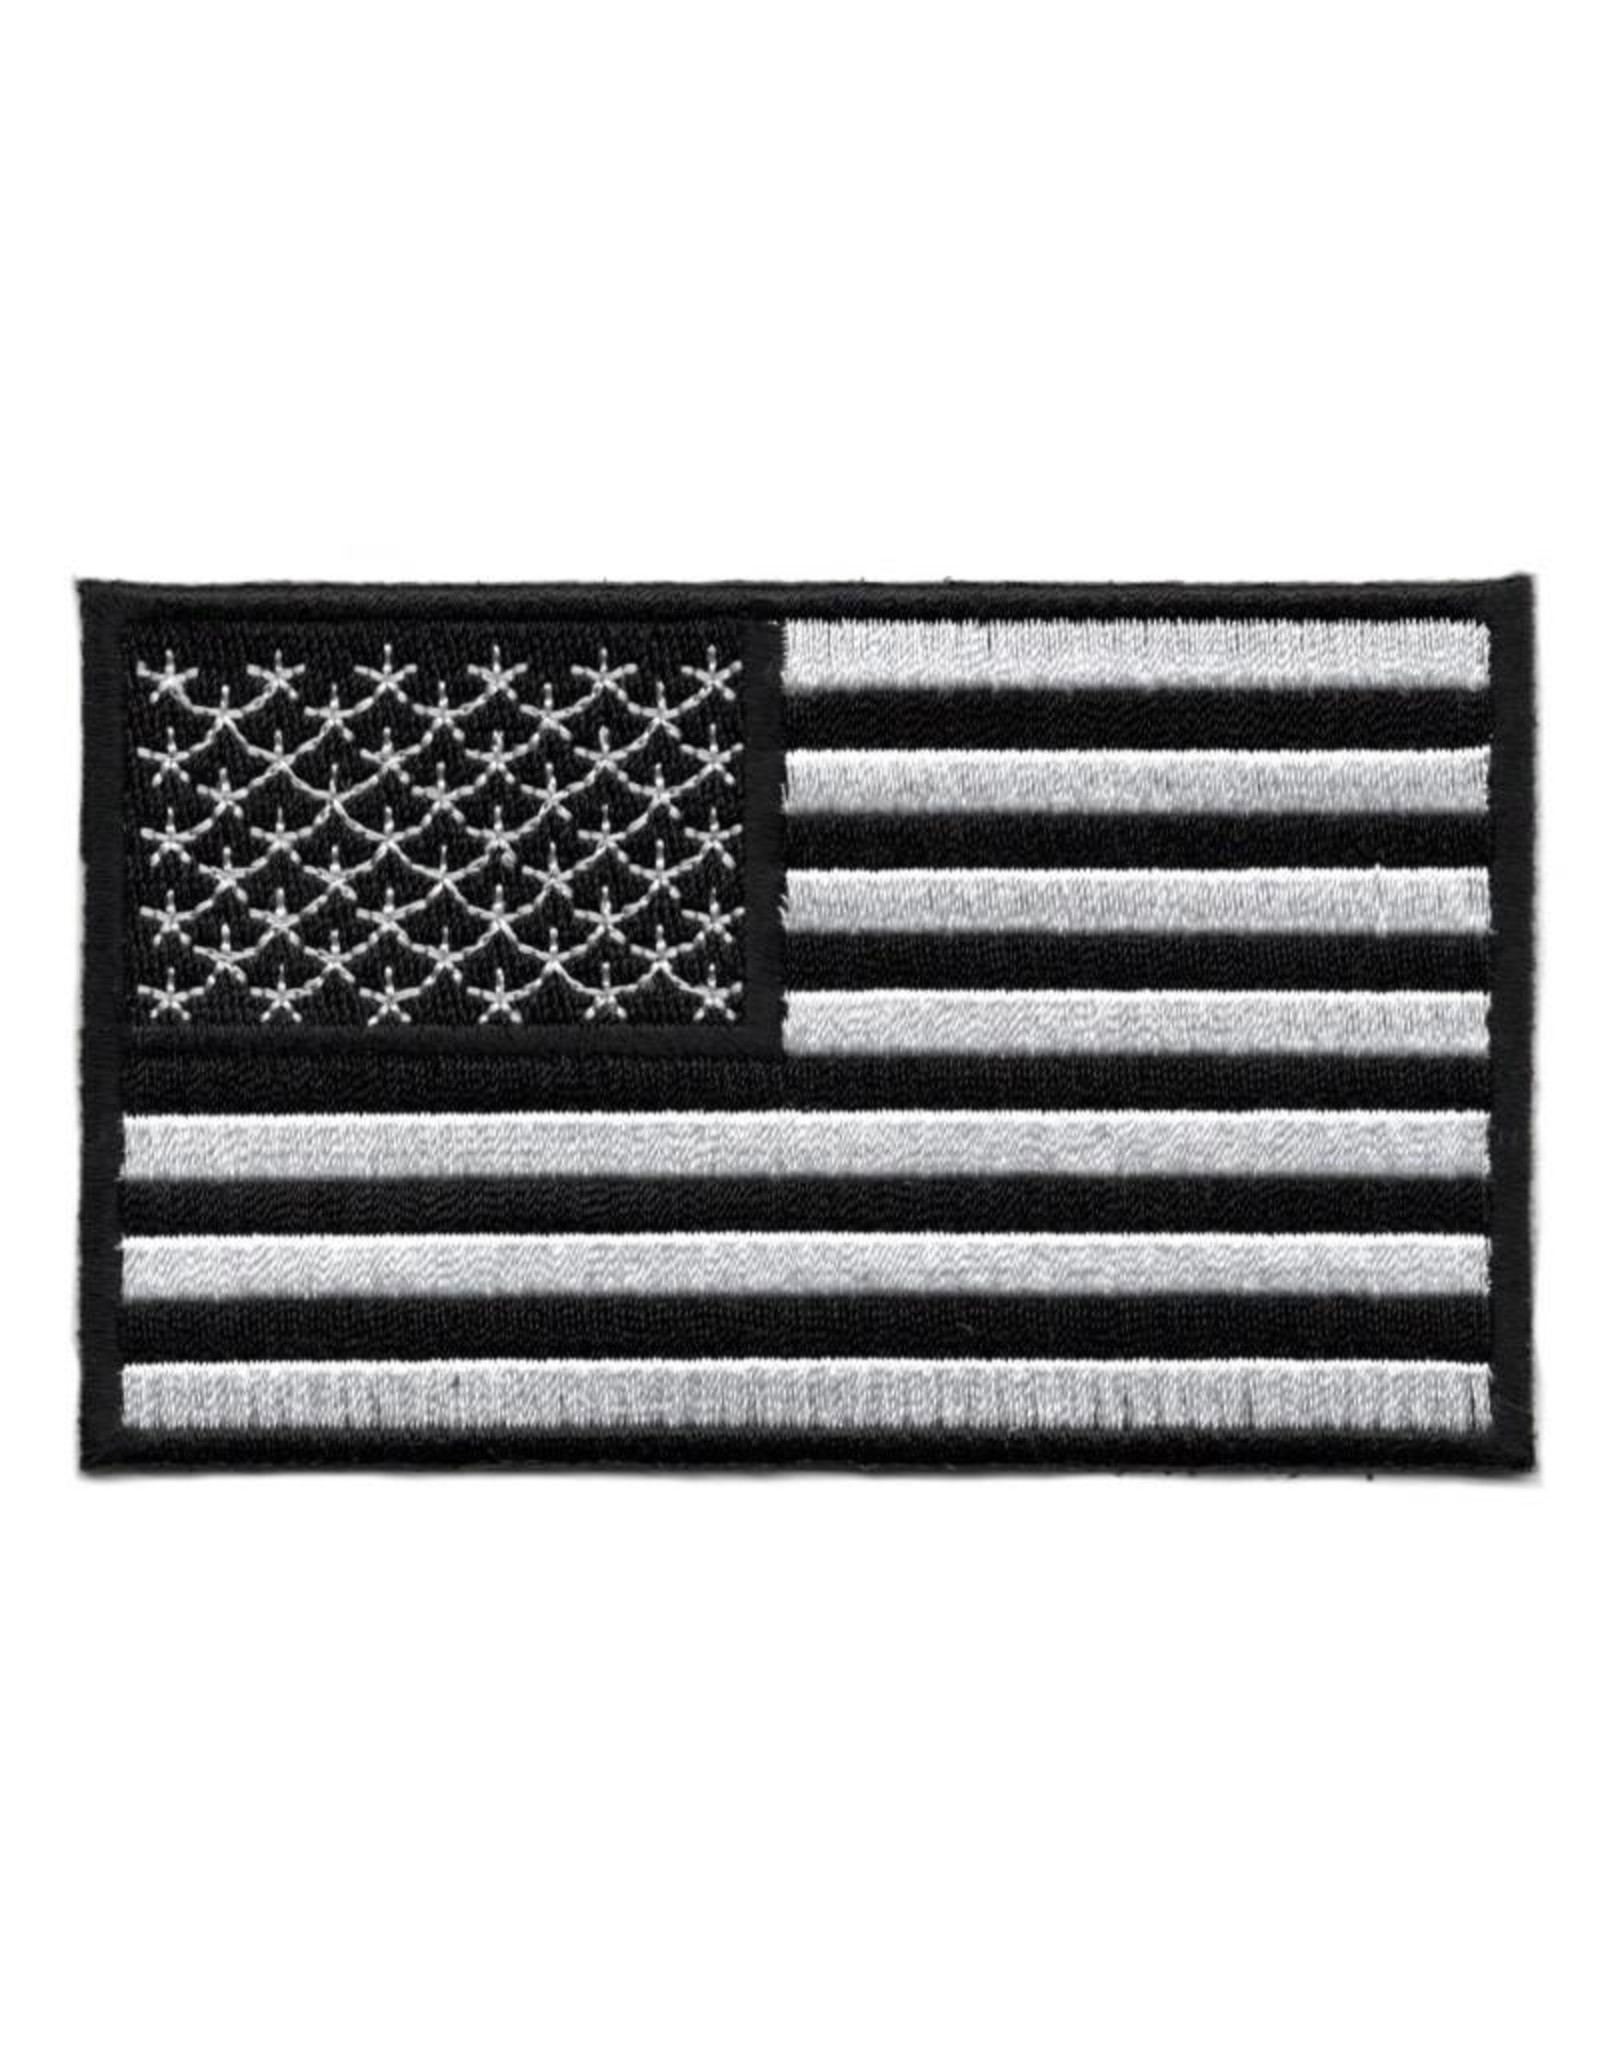 MidMil Embroidered Black & White American Flag Patch